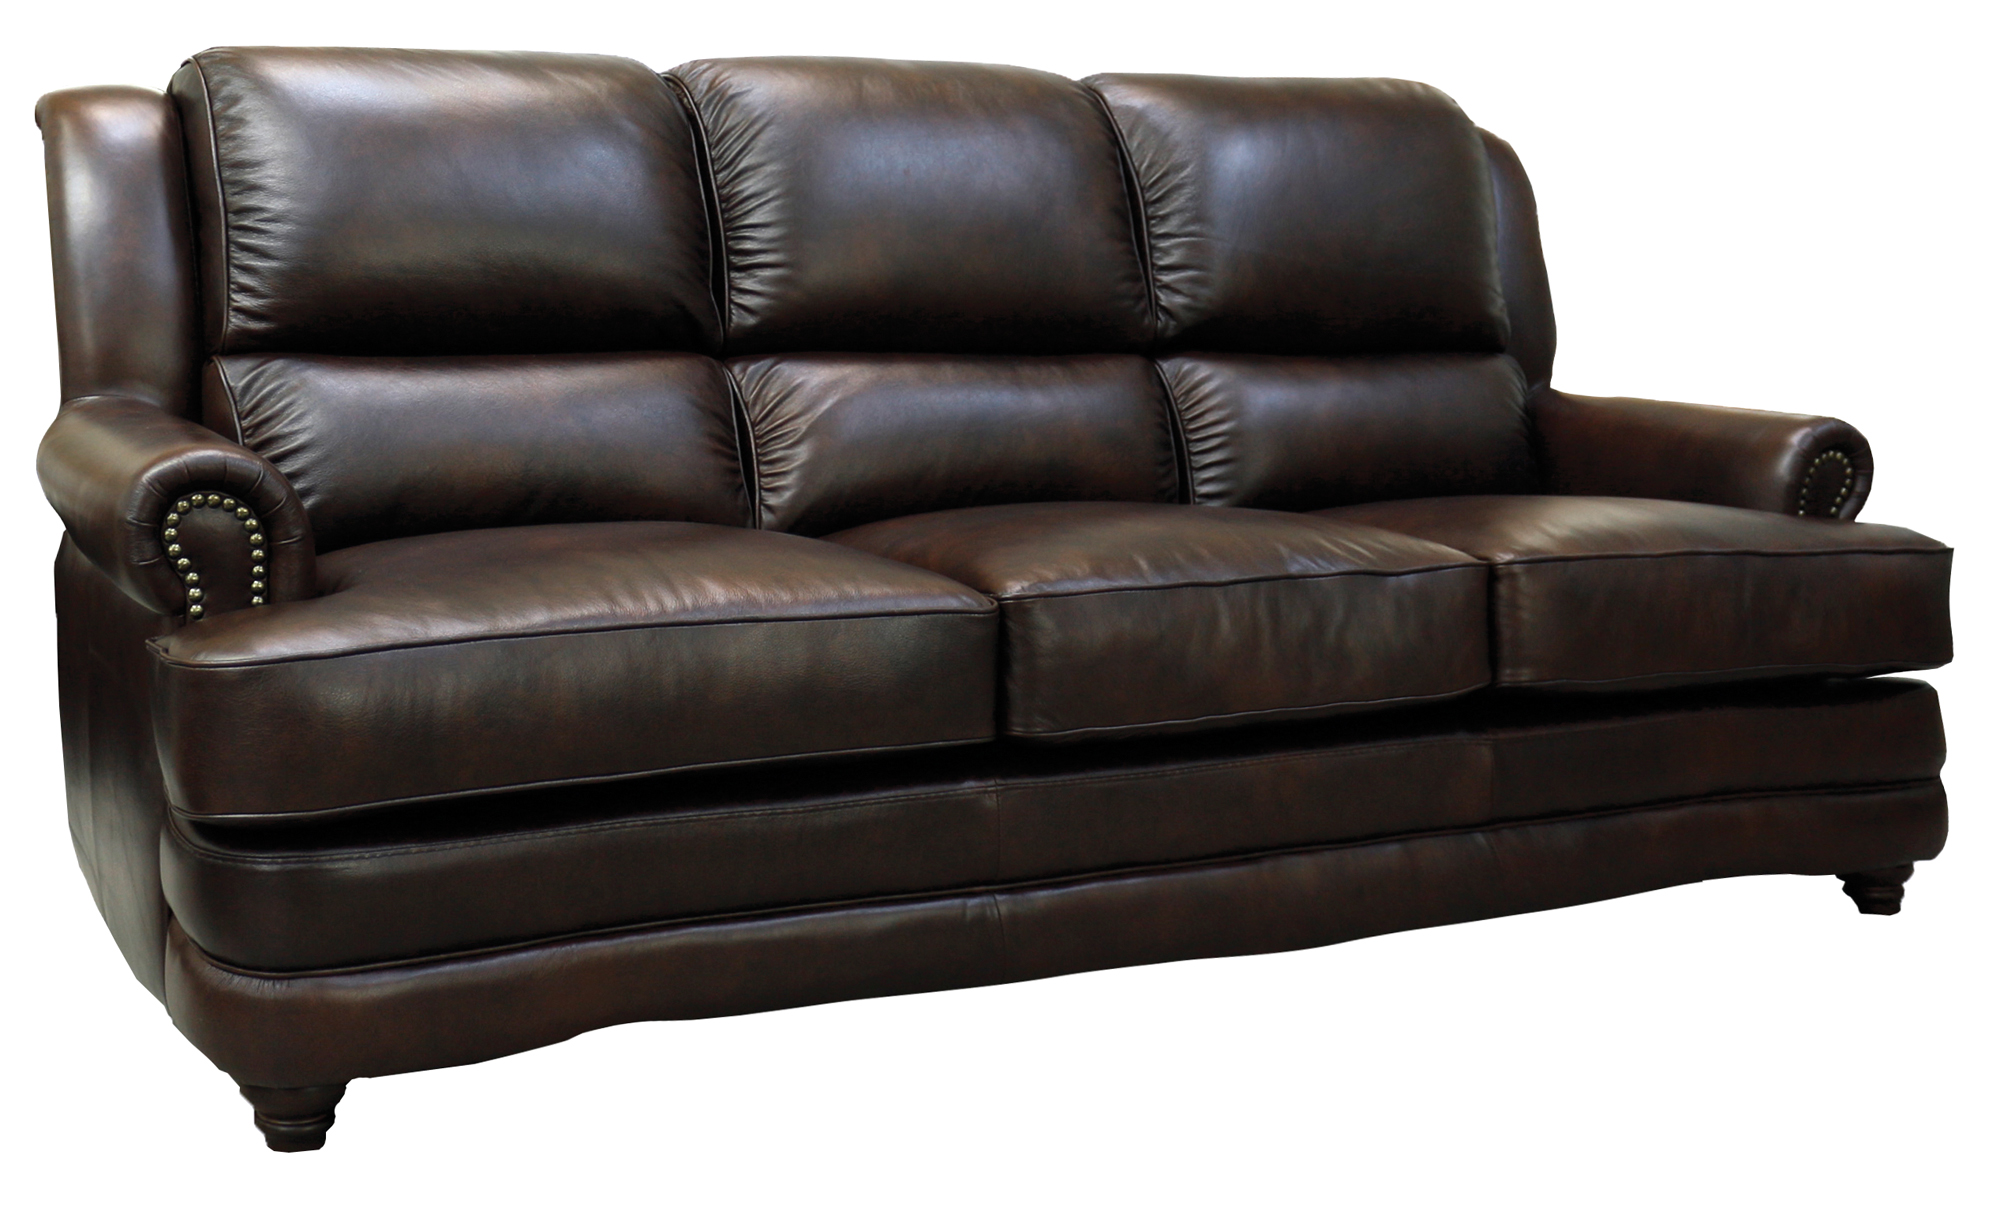 sectional leather new recliner ideas sofa bentley tag havertys design dune